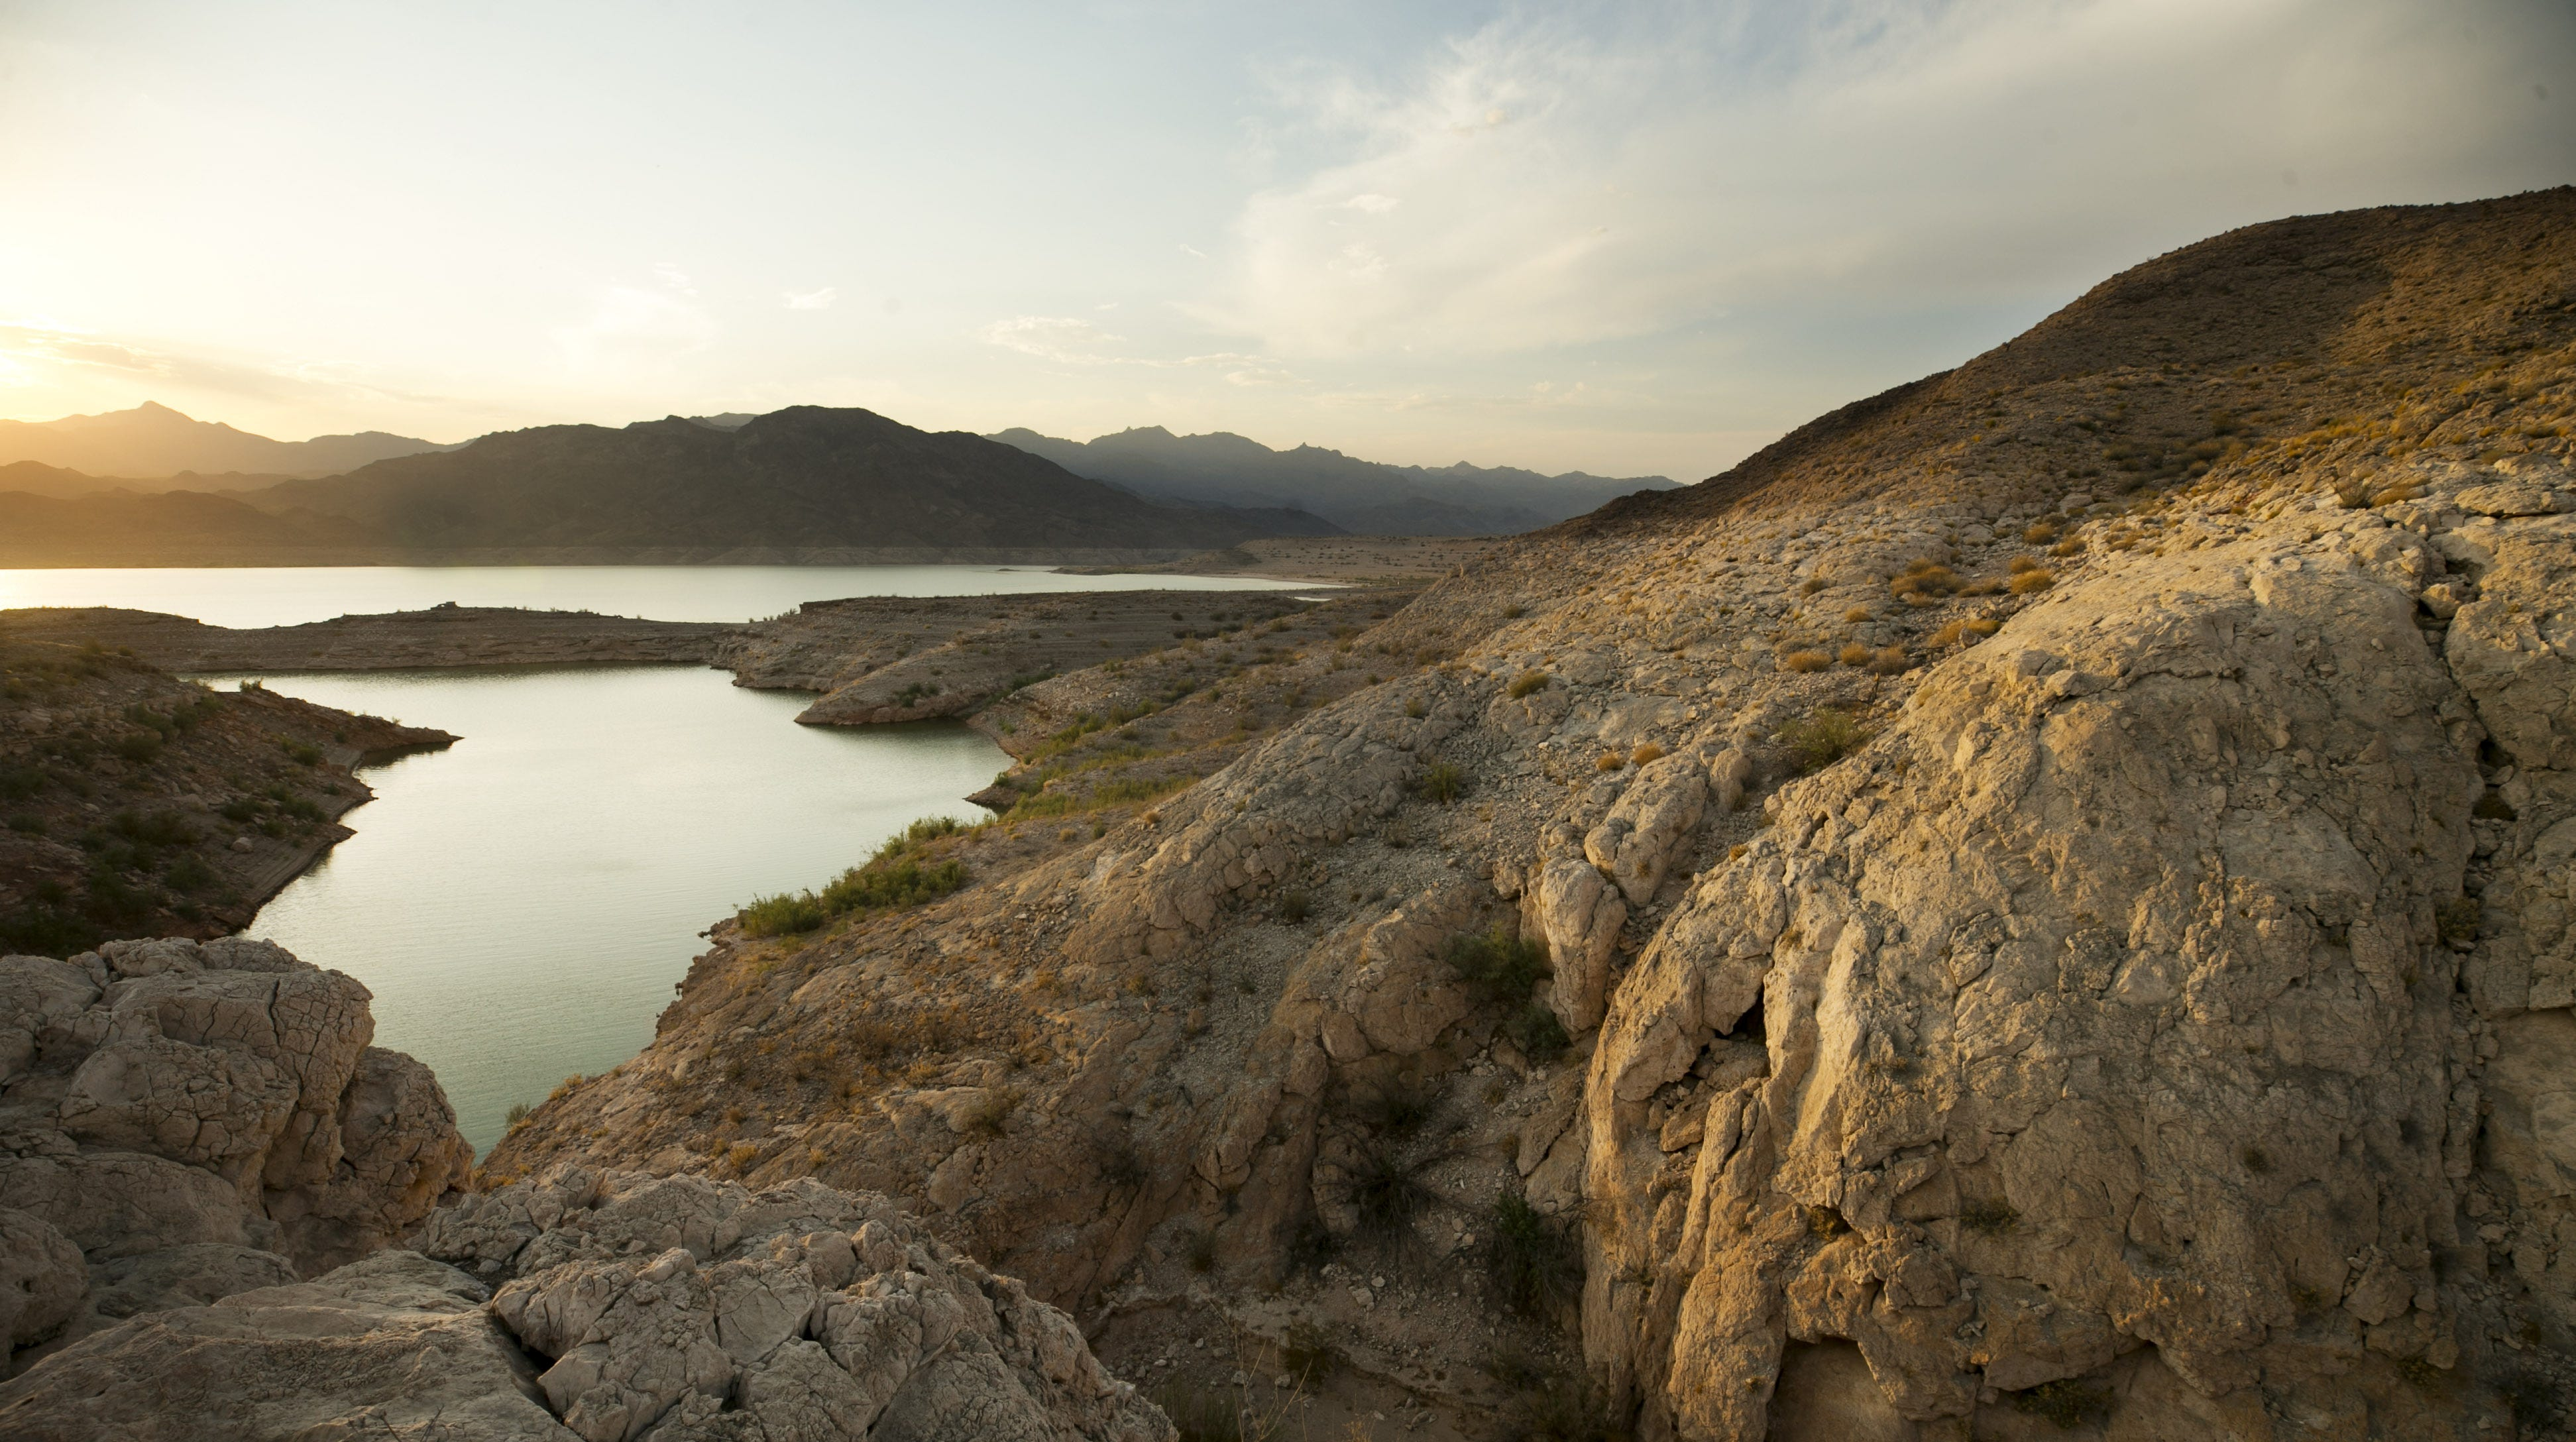 The plan to save Lake Mead (for now) is finally public. Here's what's in it